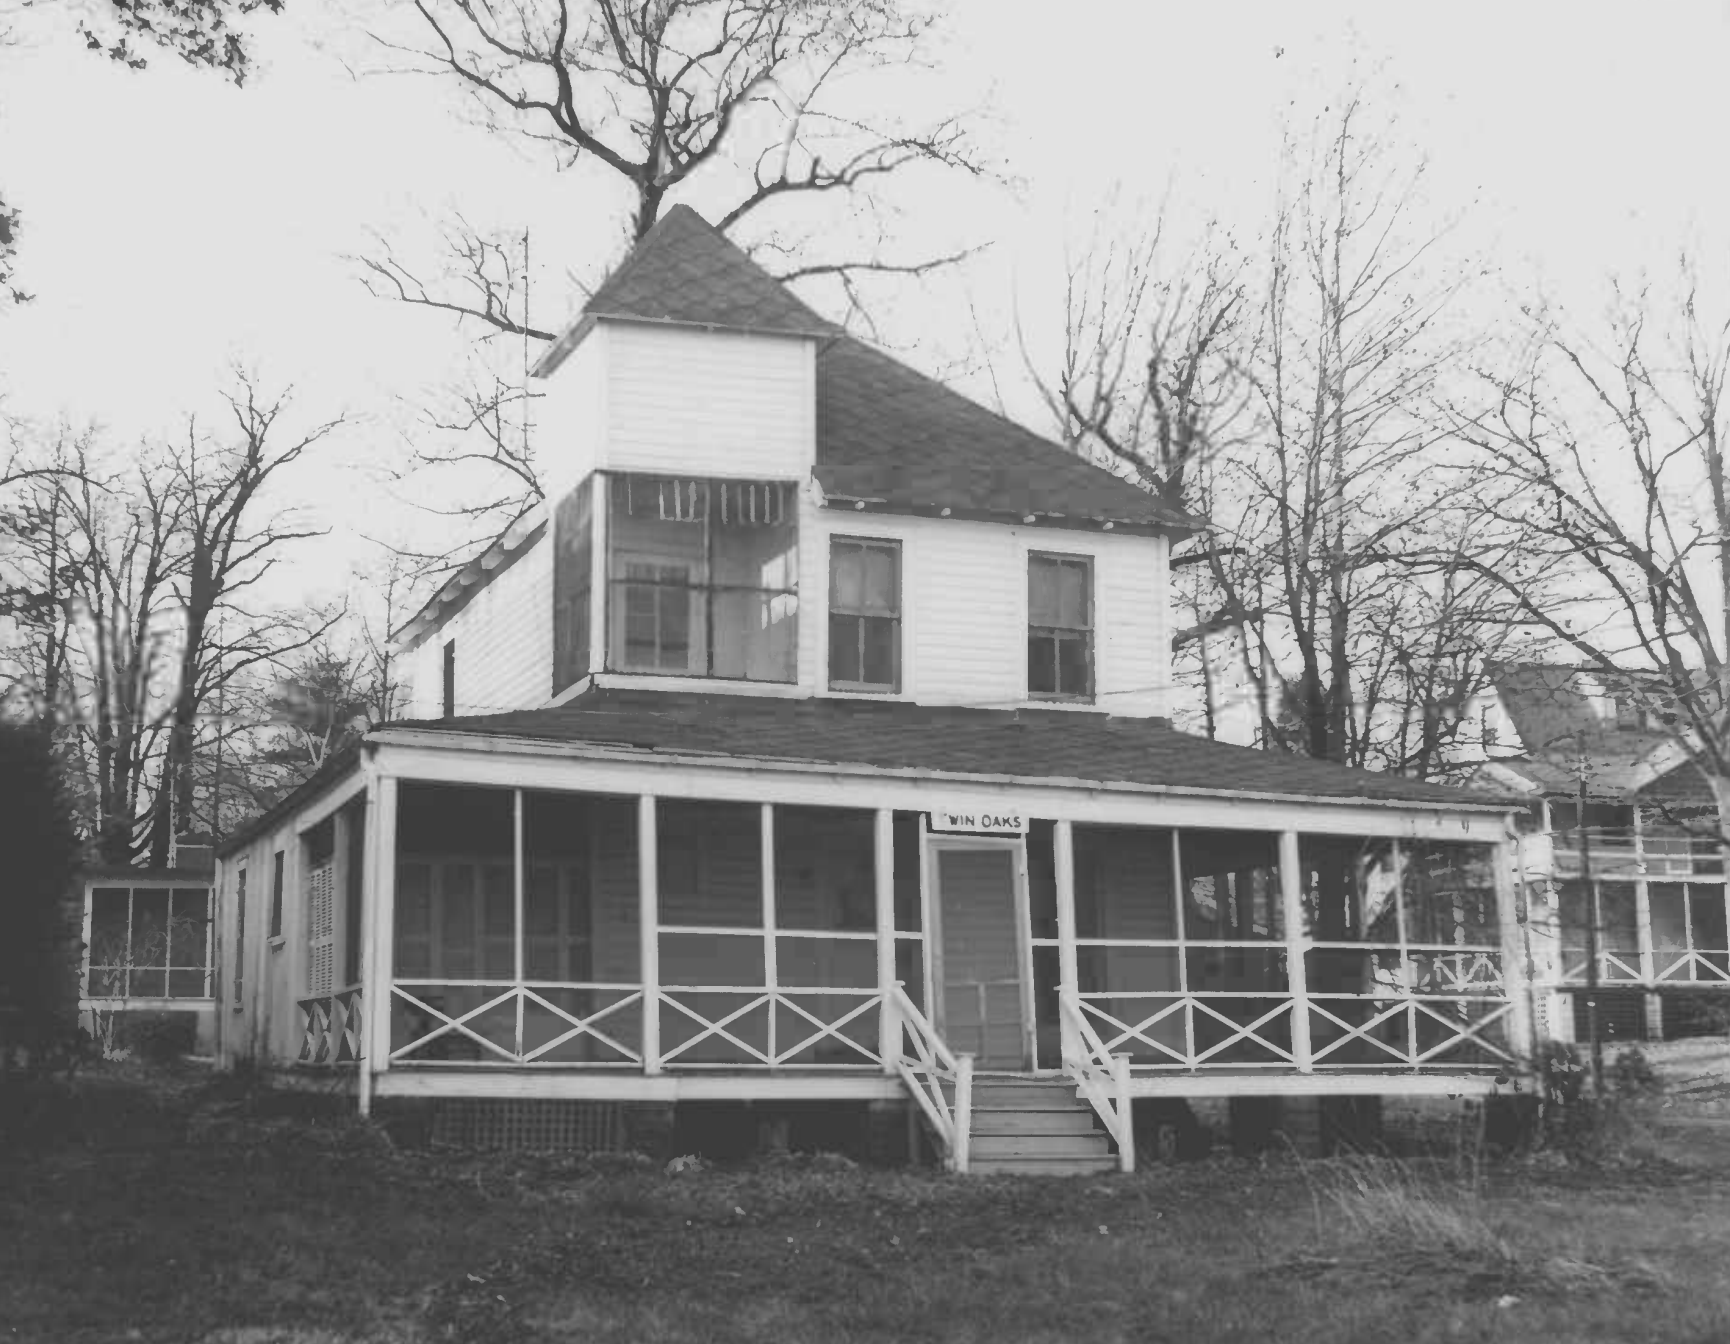 The Douglass Summer House in Anne Arundel County as listed on the National Register of Historic Properties. Image from the United States Department of the Interior / NPS